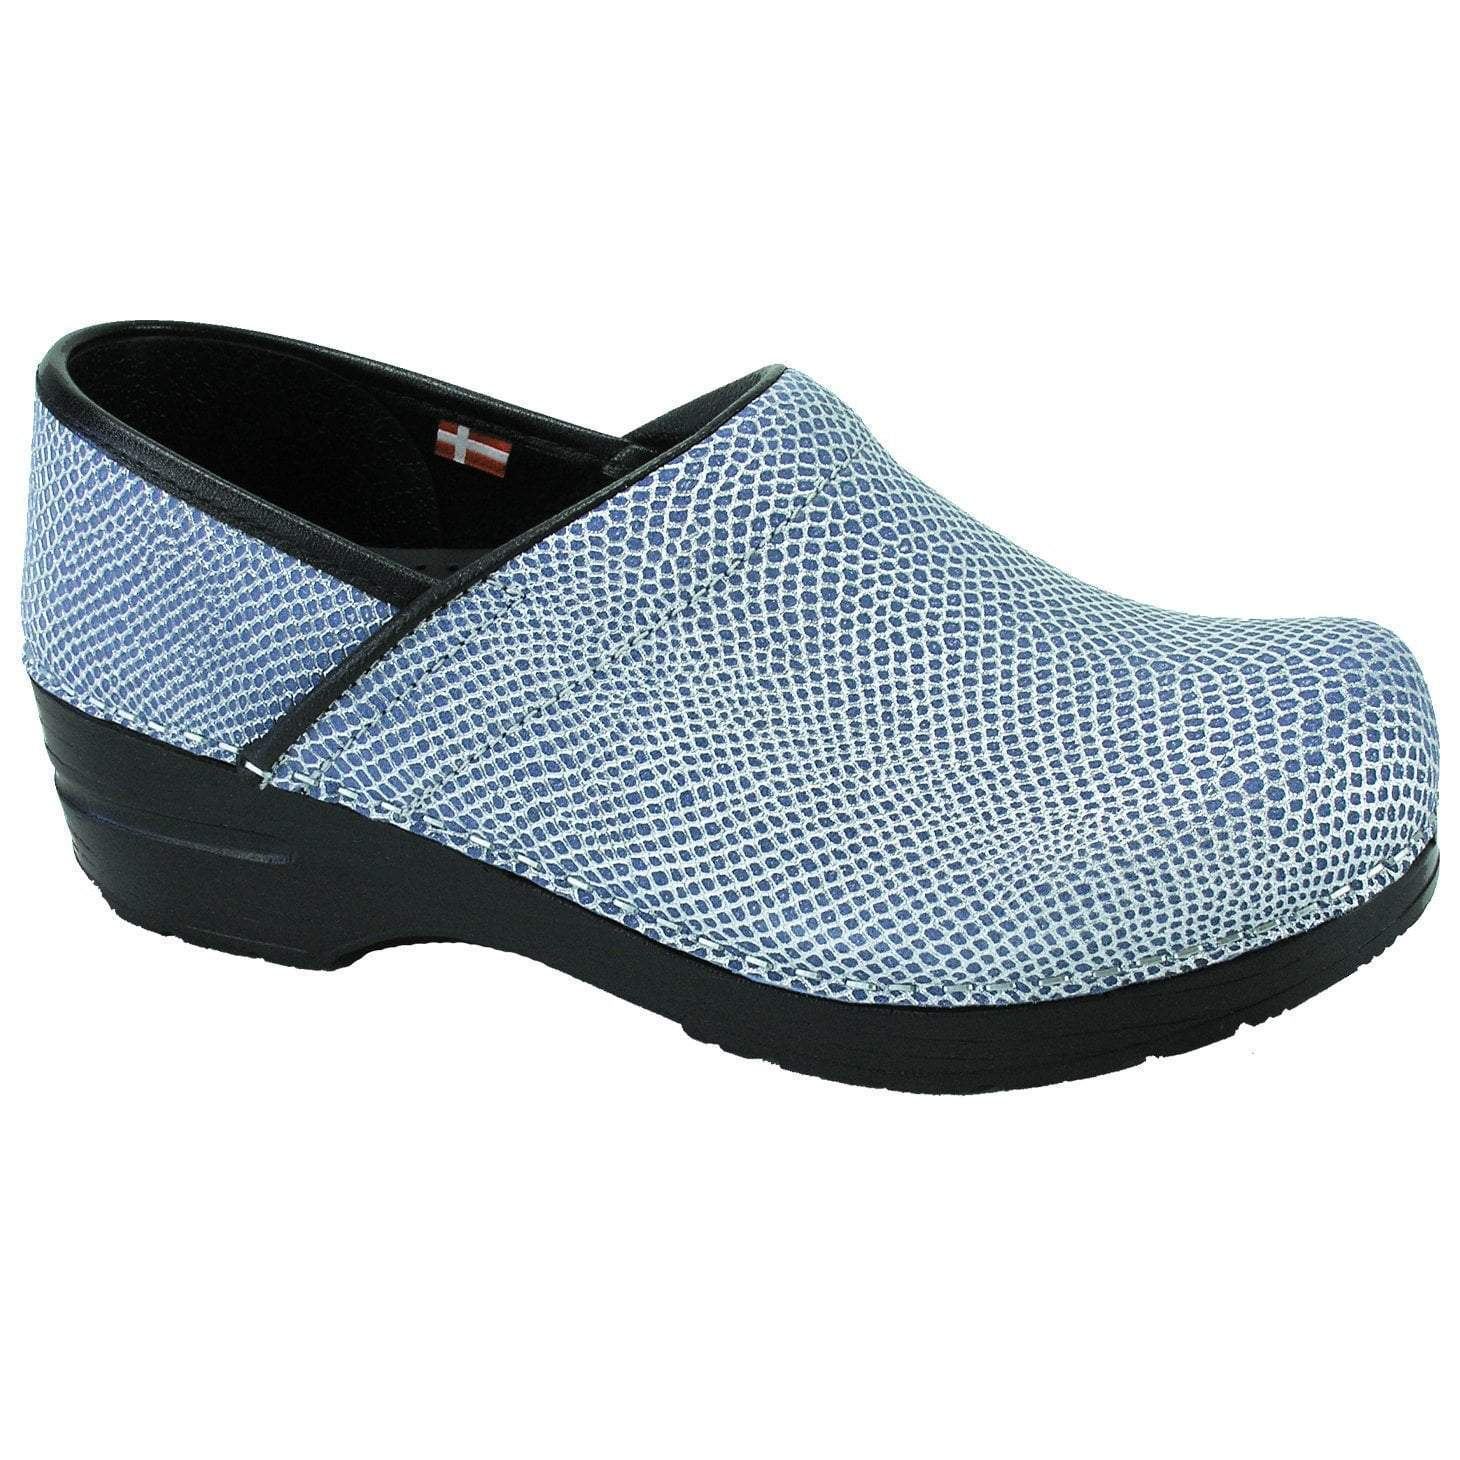 Sanita Limited Reptile Women's Closed Back Clog